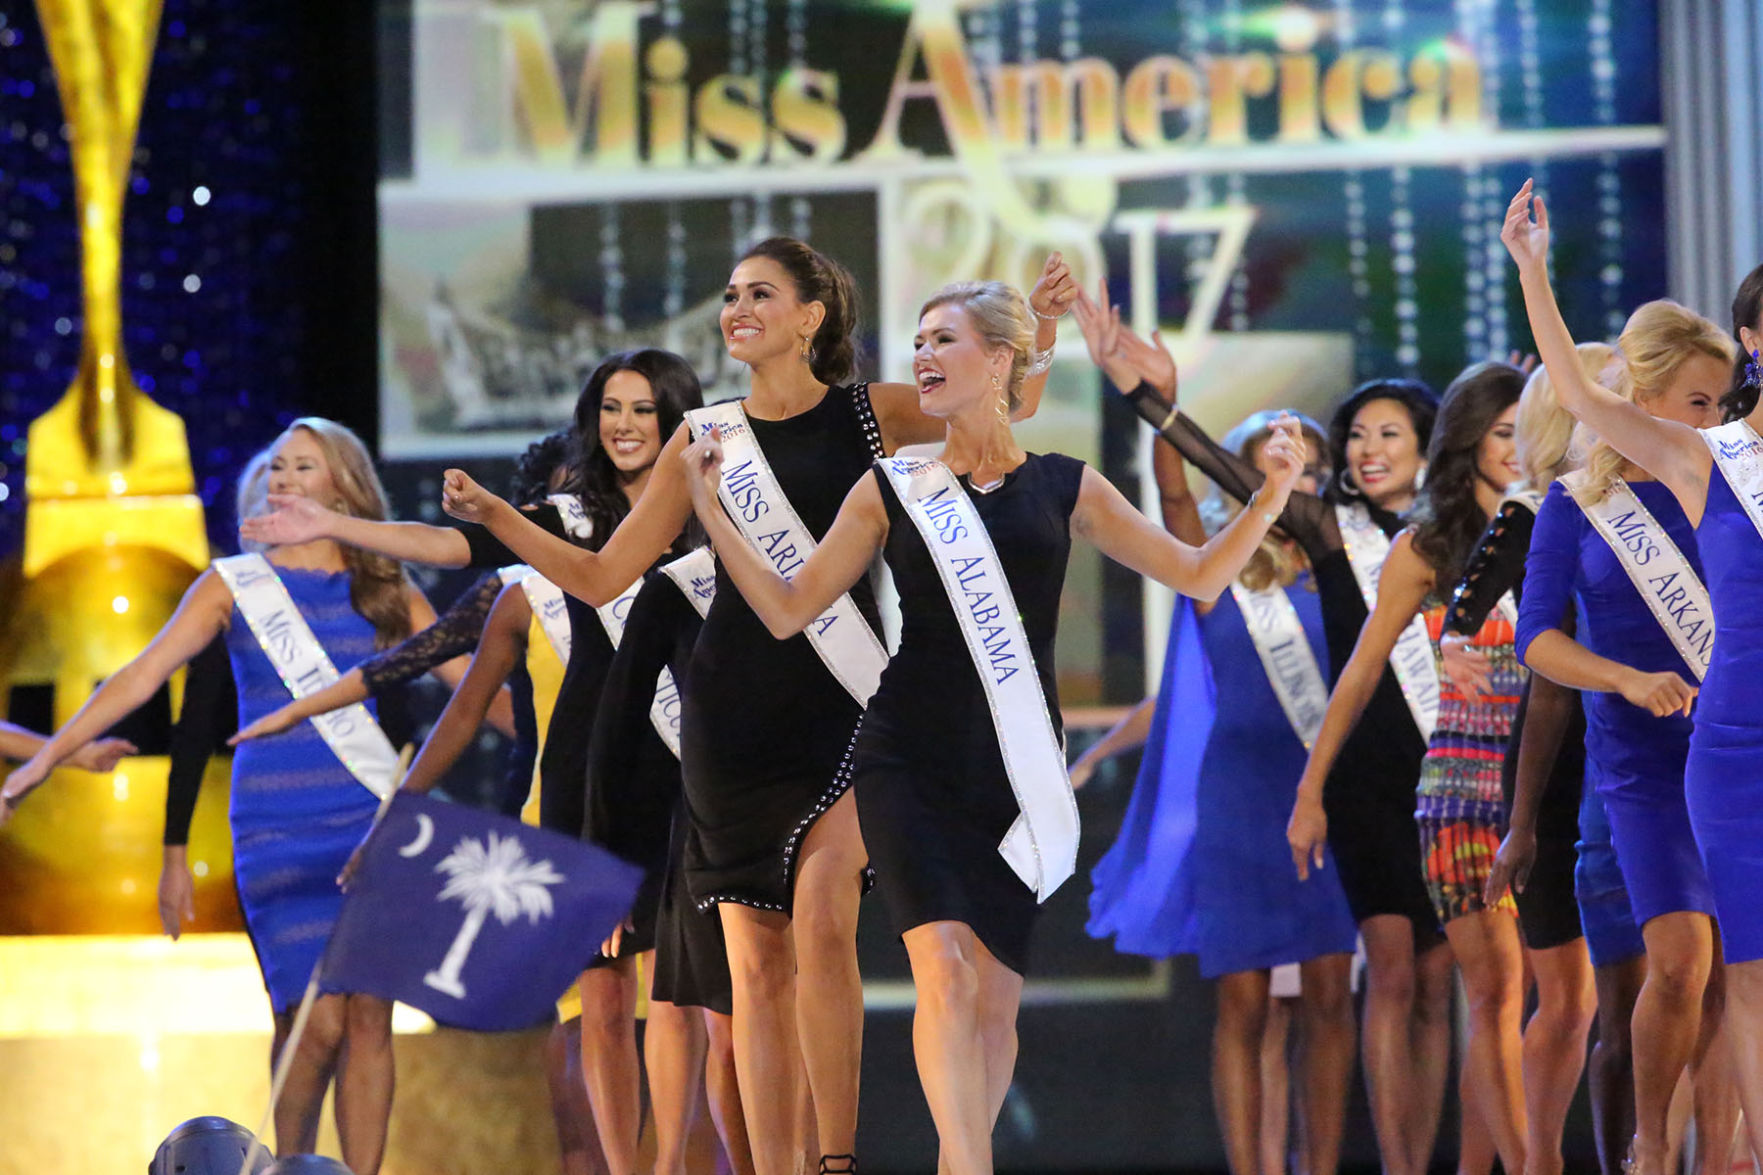 Lesbian contestant ready to compete for Miss America crown